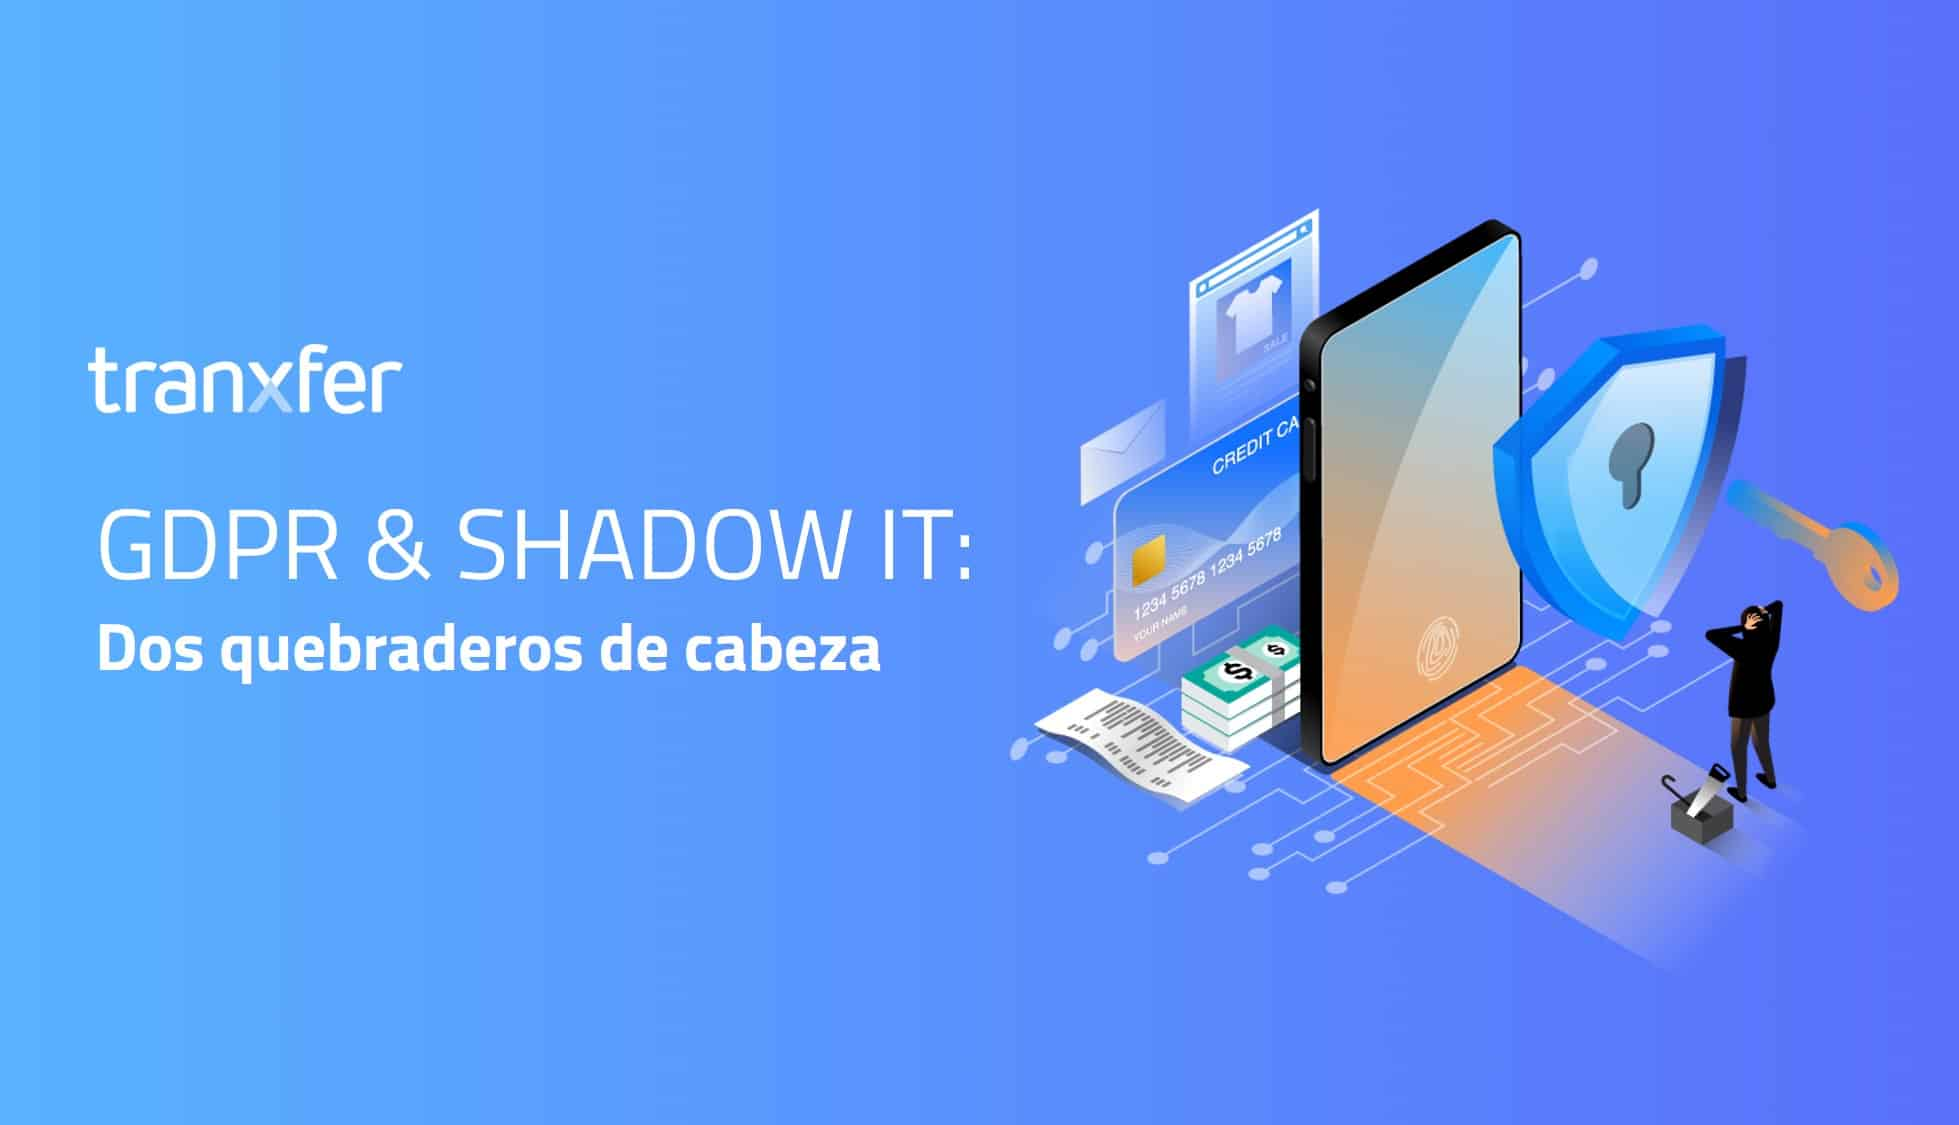 ley de proteccion de datos y shadow IT como problemas